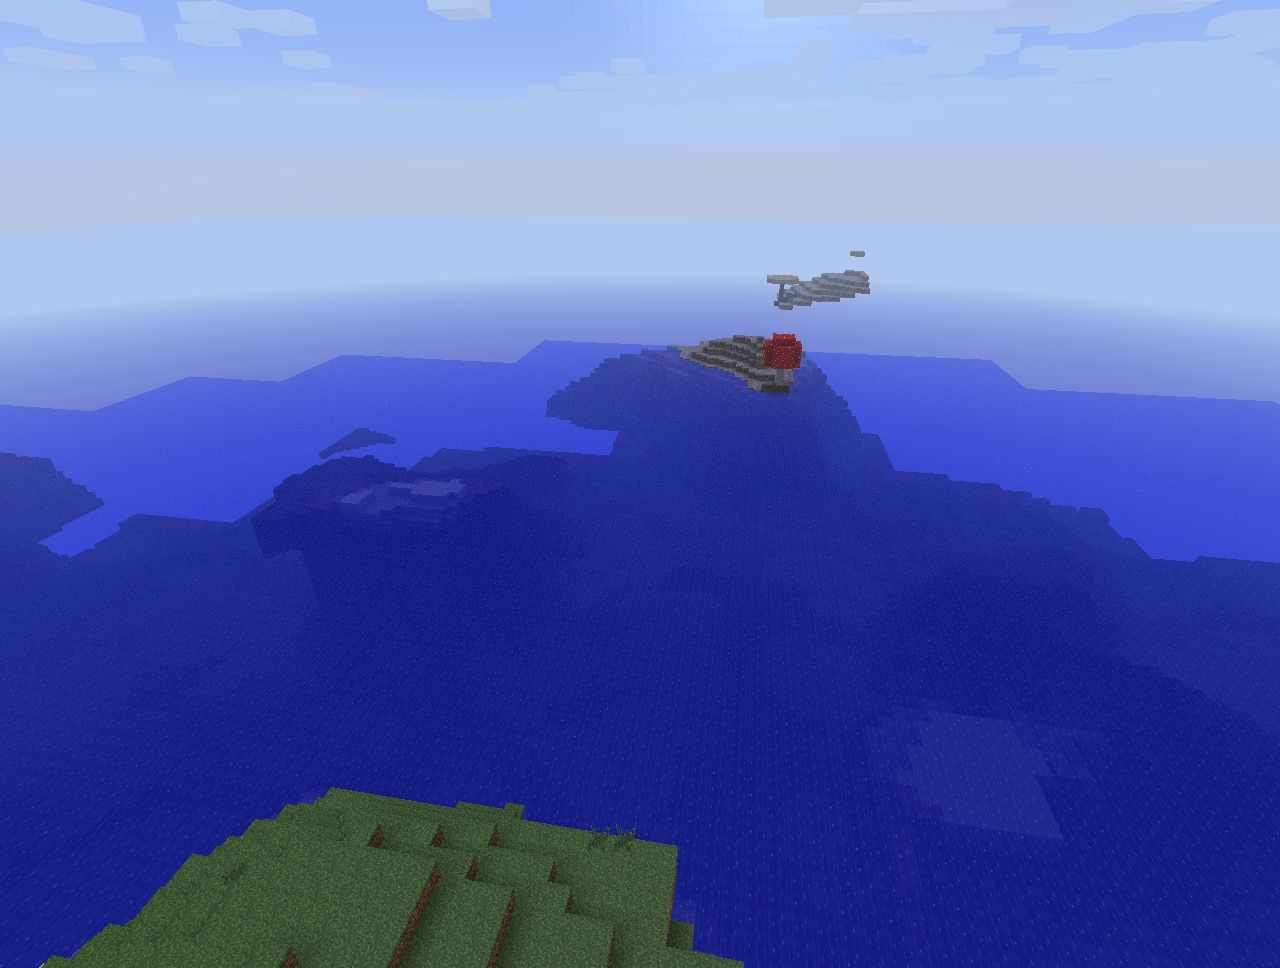 Minecraft Seed 1 Island With Only 1 Tree And A Mushroom